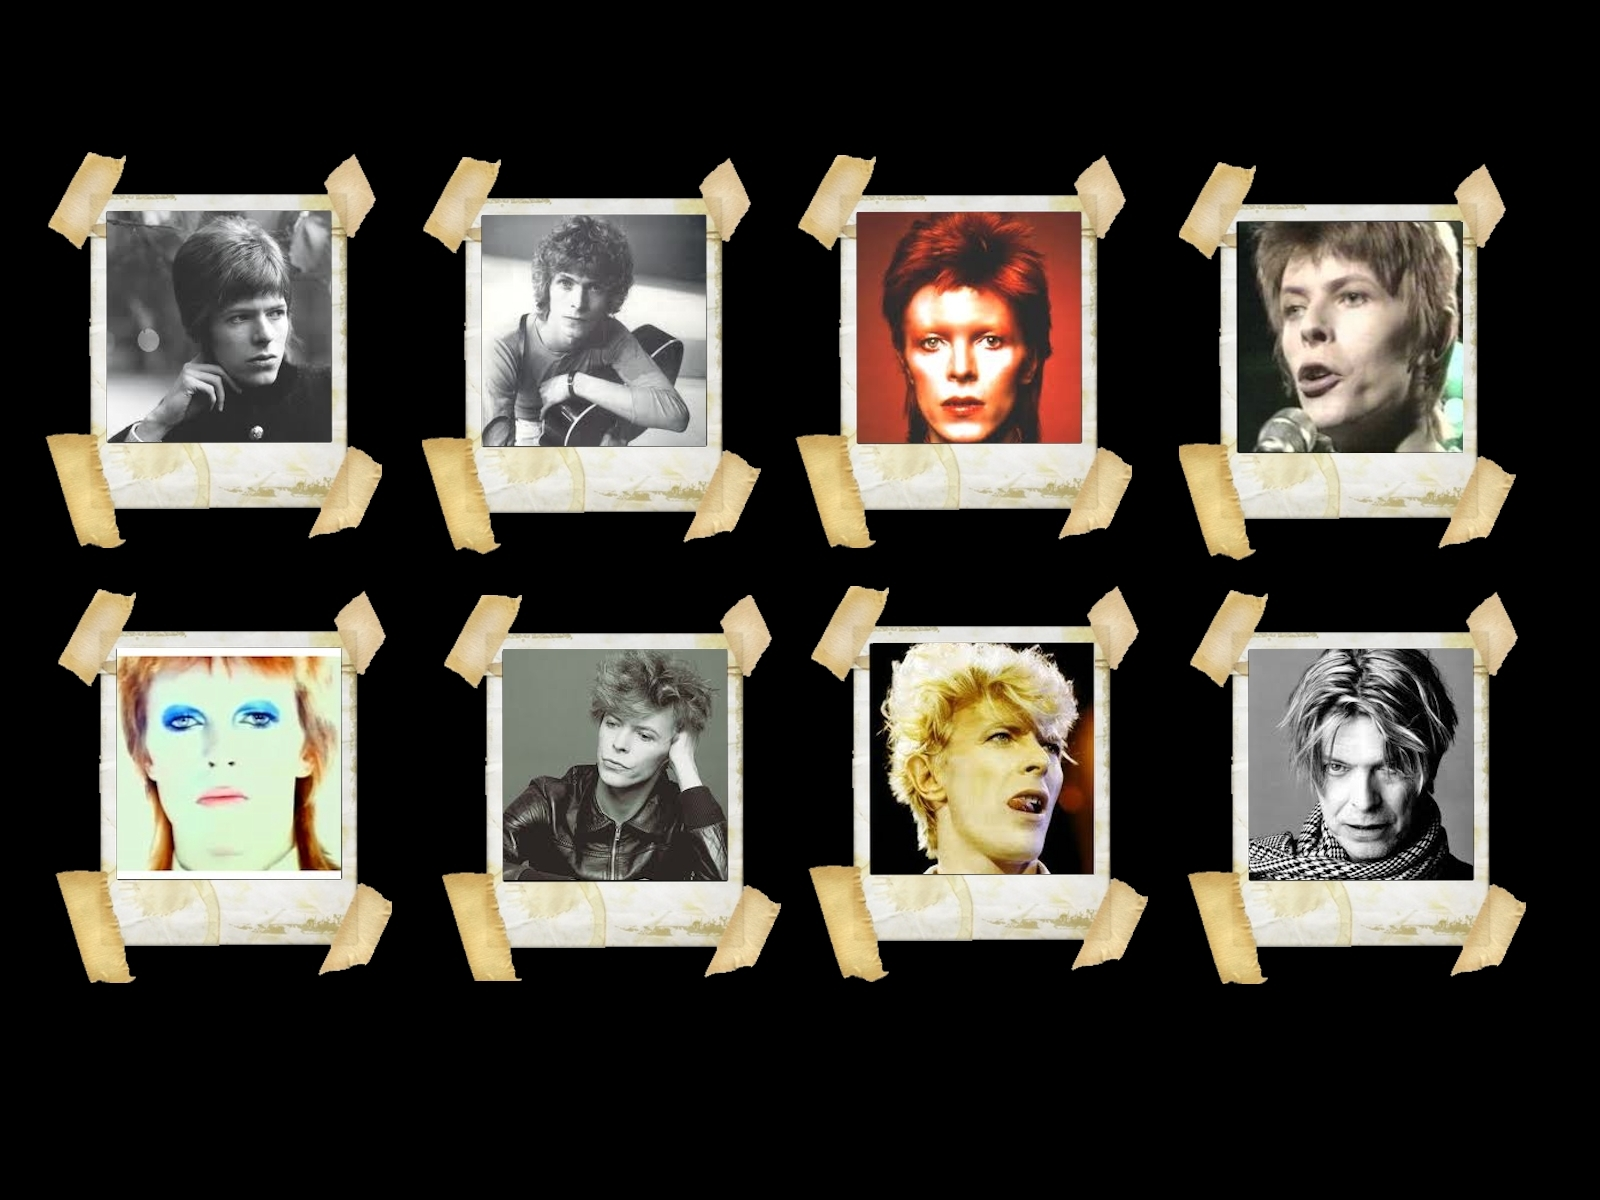 David Bowie Wallpaper - david-bowie wallpaper